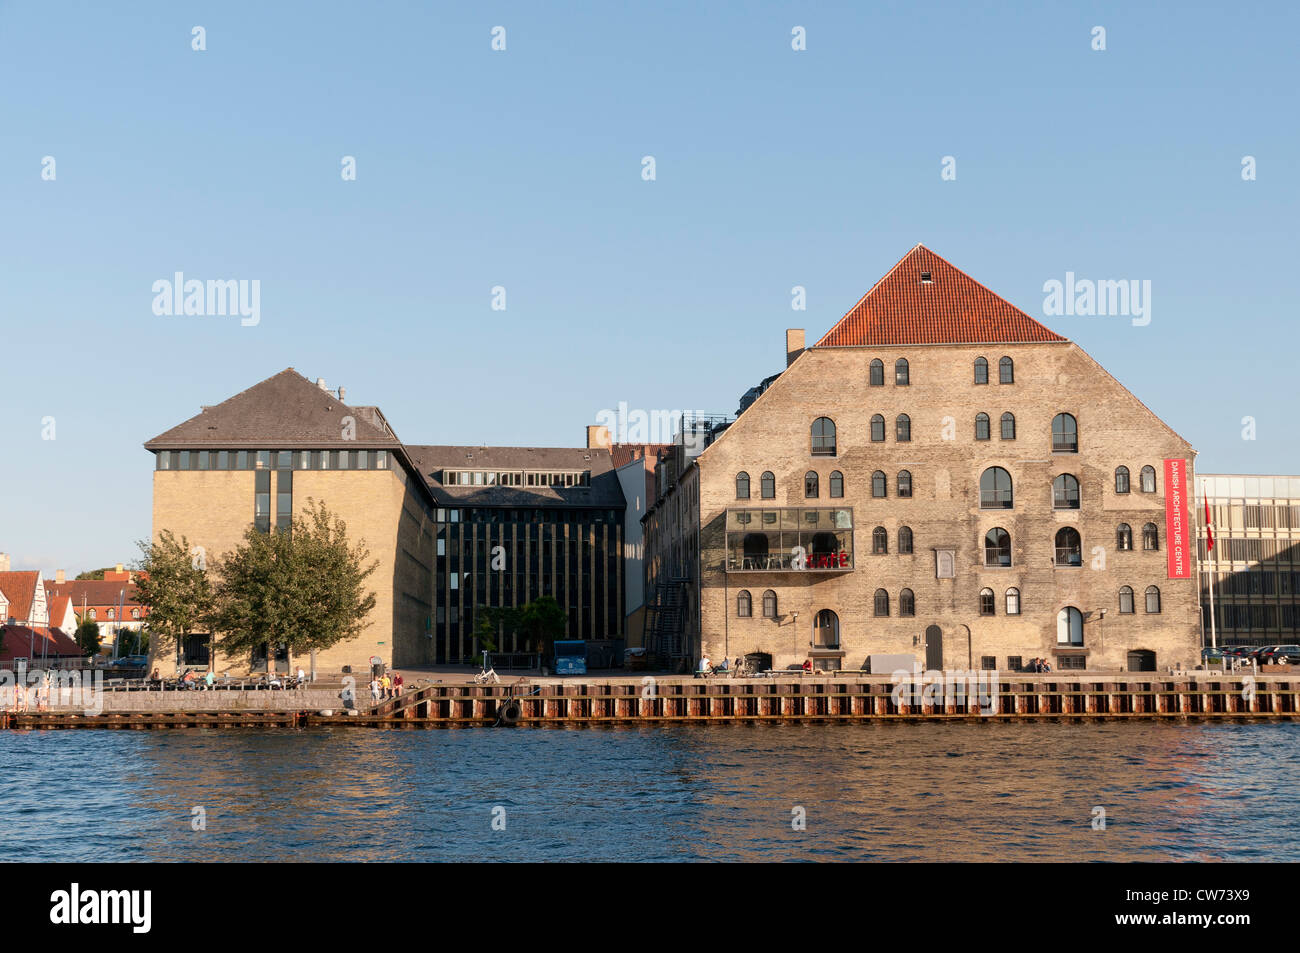 centre d'architecture danois The Danish architecture center dansk arkitektur center - Stock Image